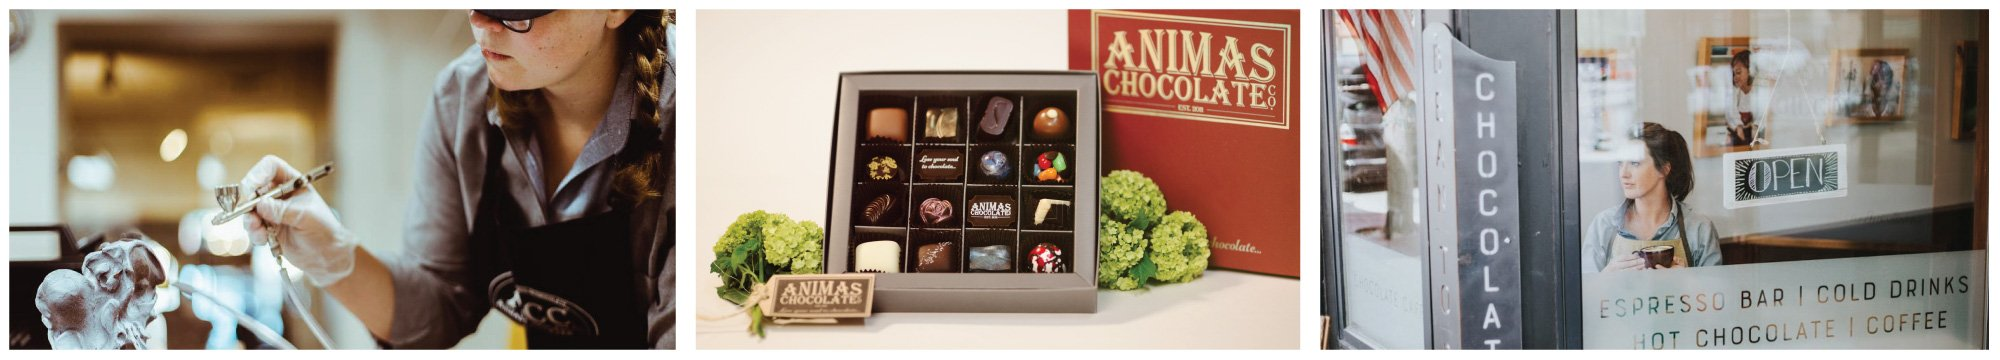 Animas Chocolate & Coffee Company